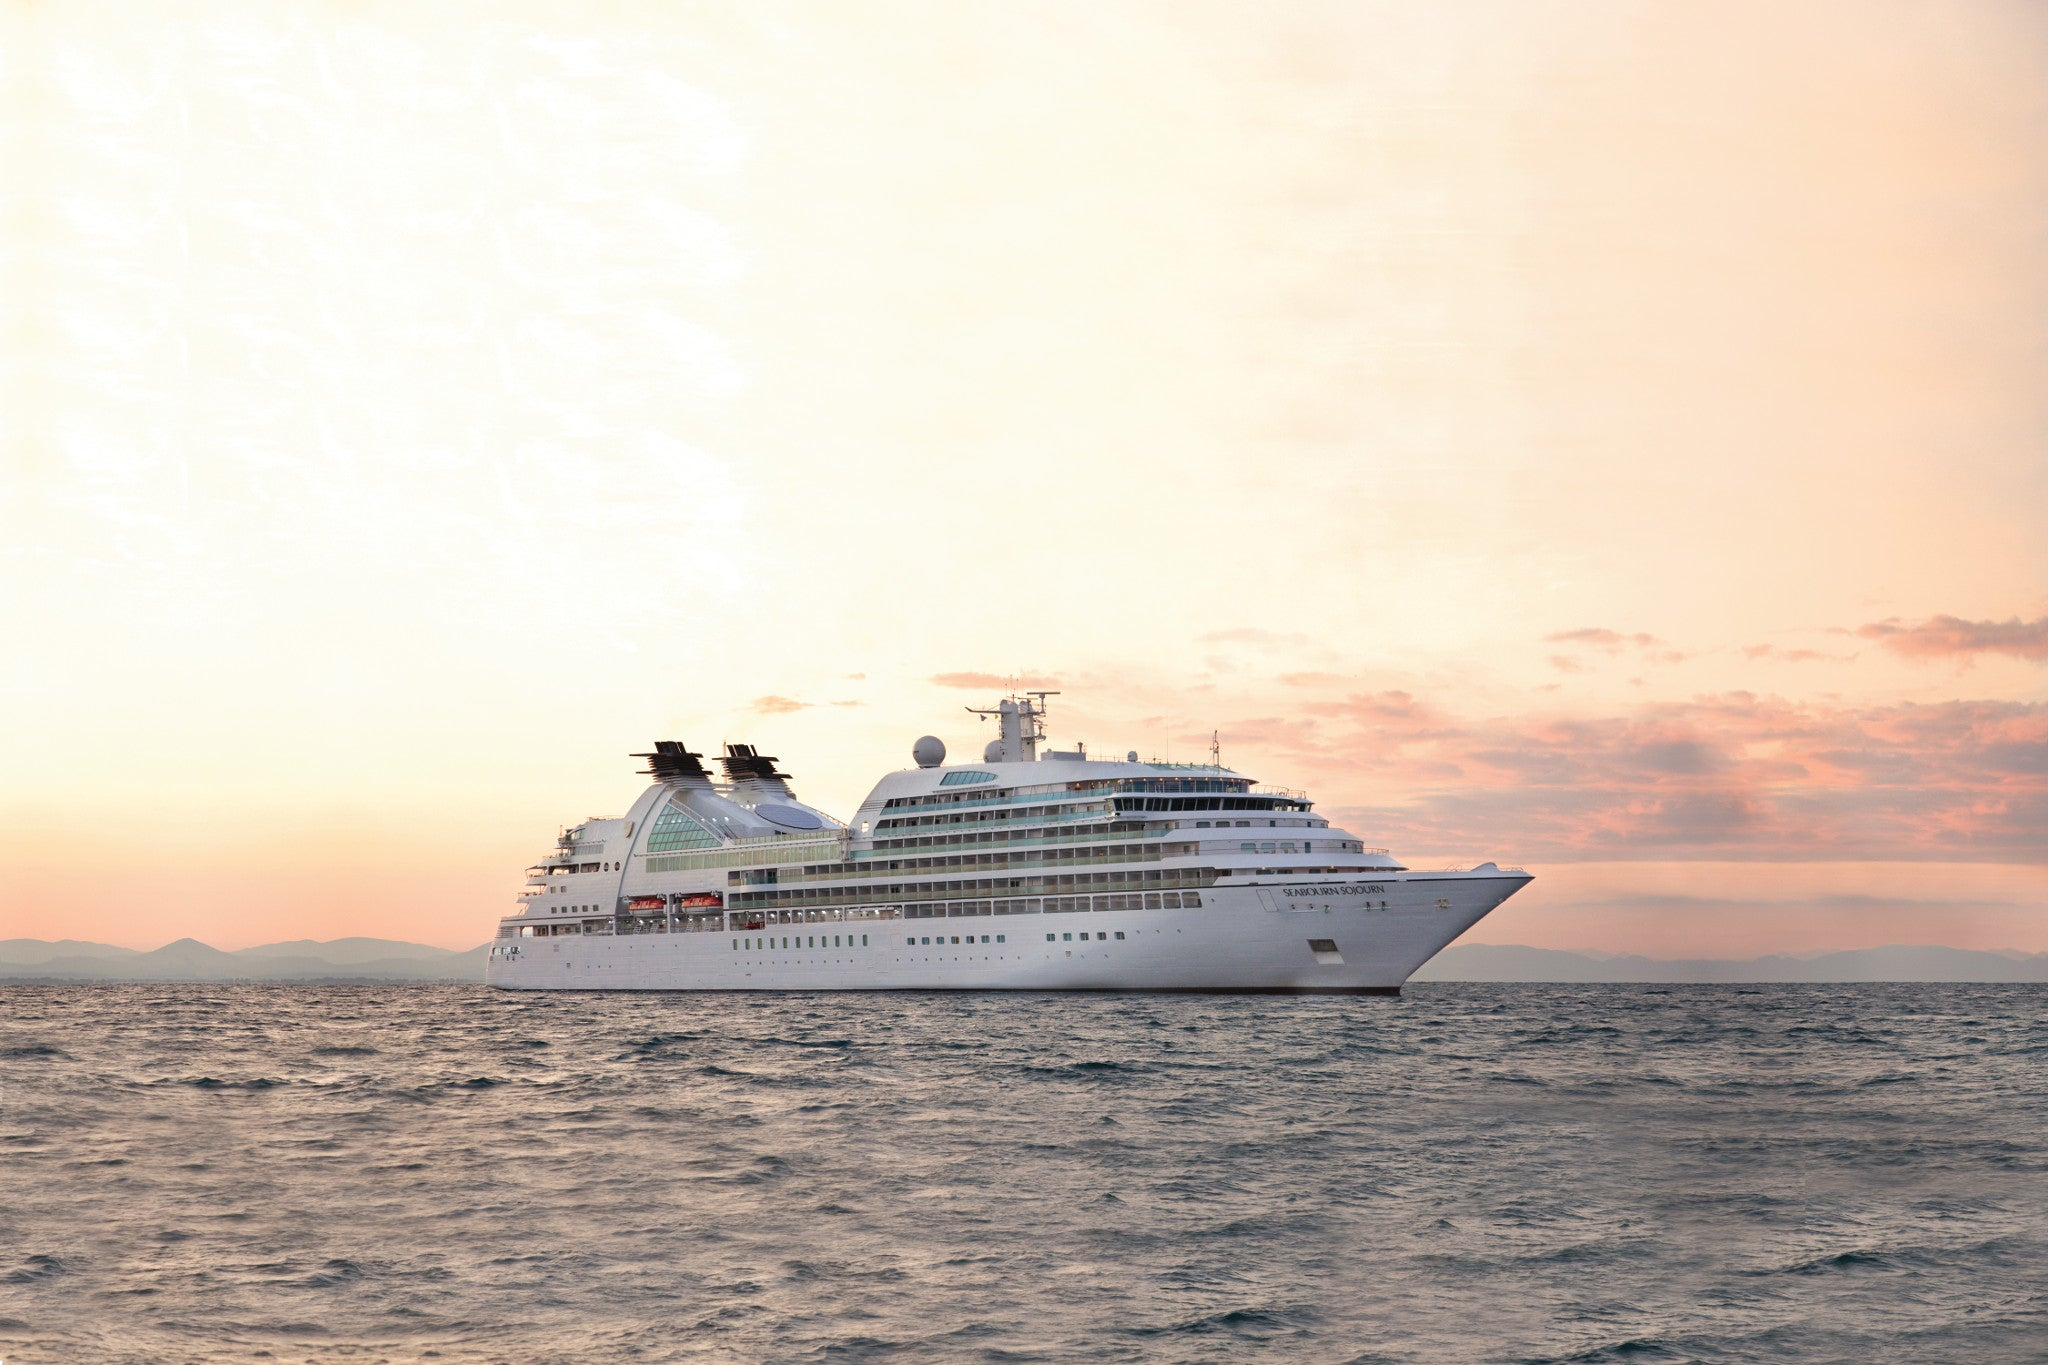 5 secrets to getting a luxury cruise for less - The Points Guy